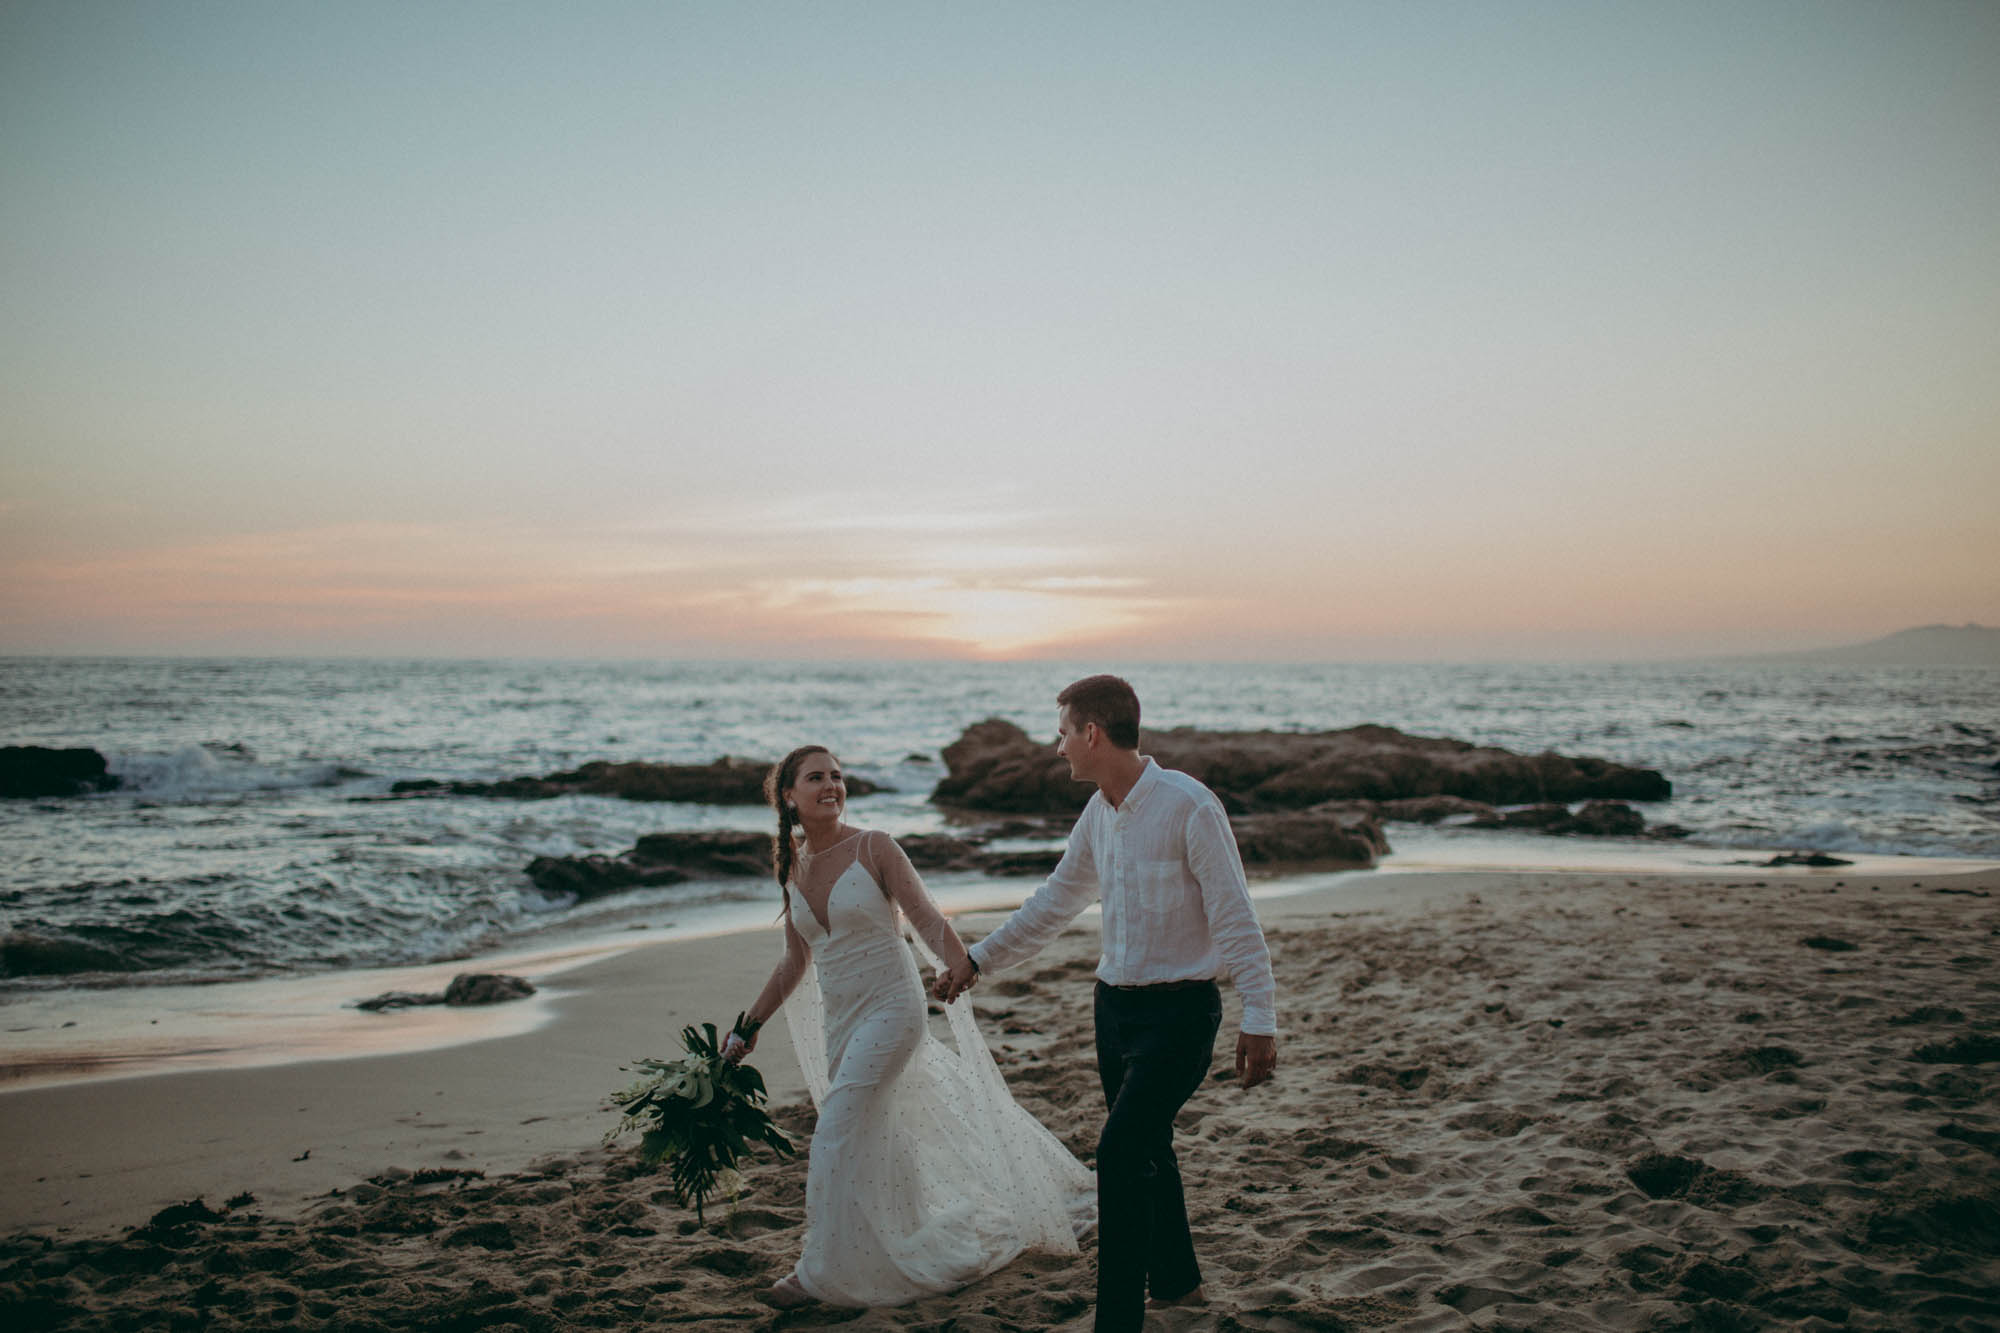 c_m_mexicowedding_destinationphotographer-85.jpg